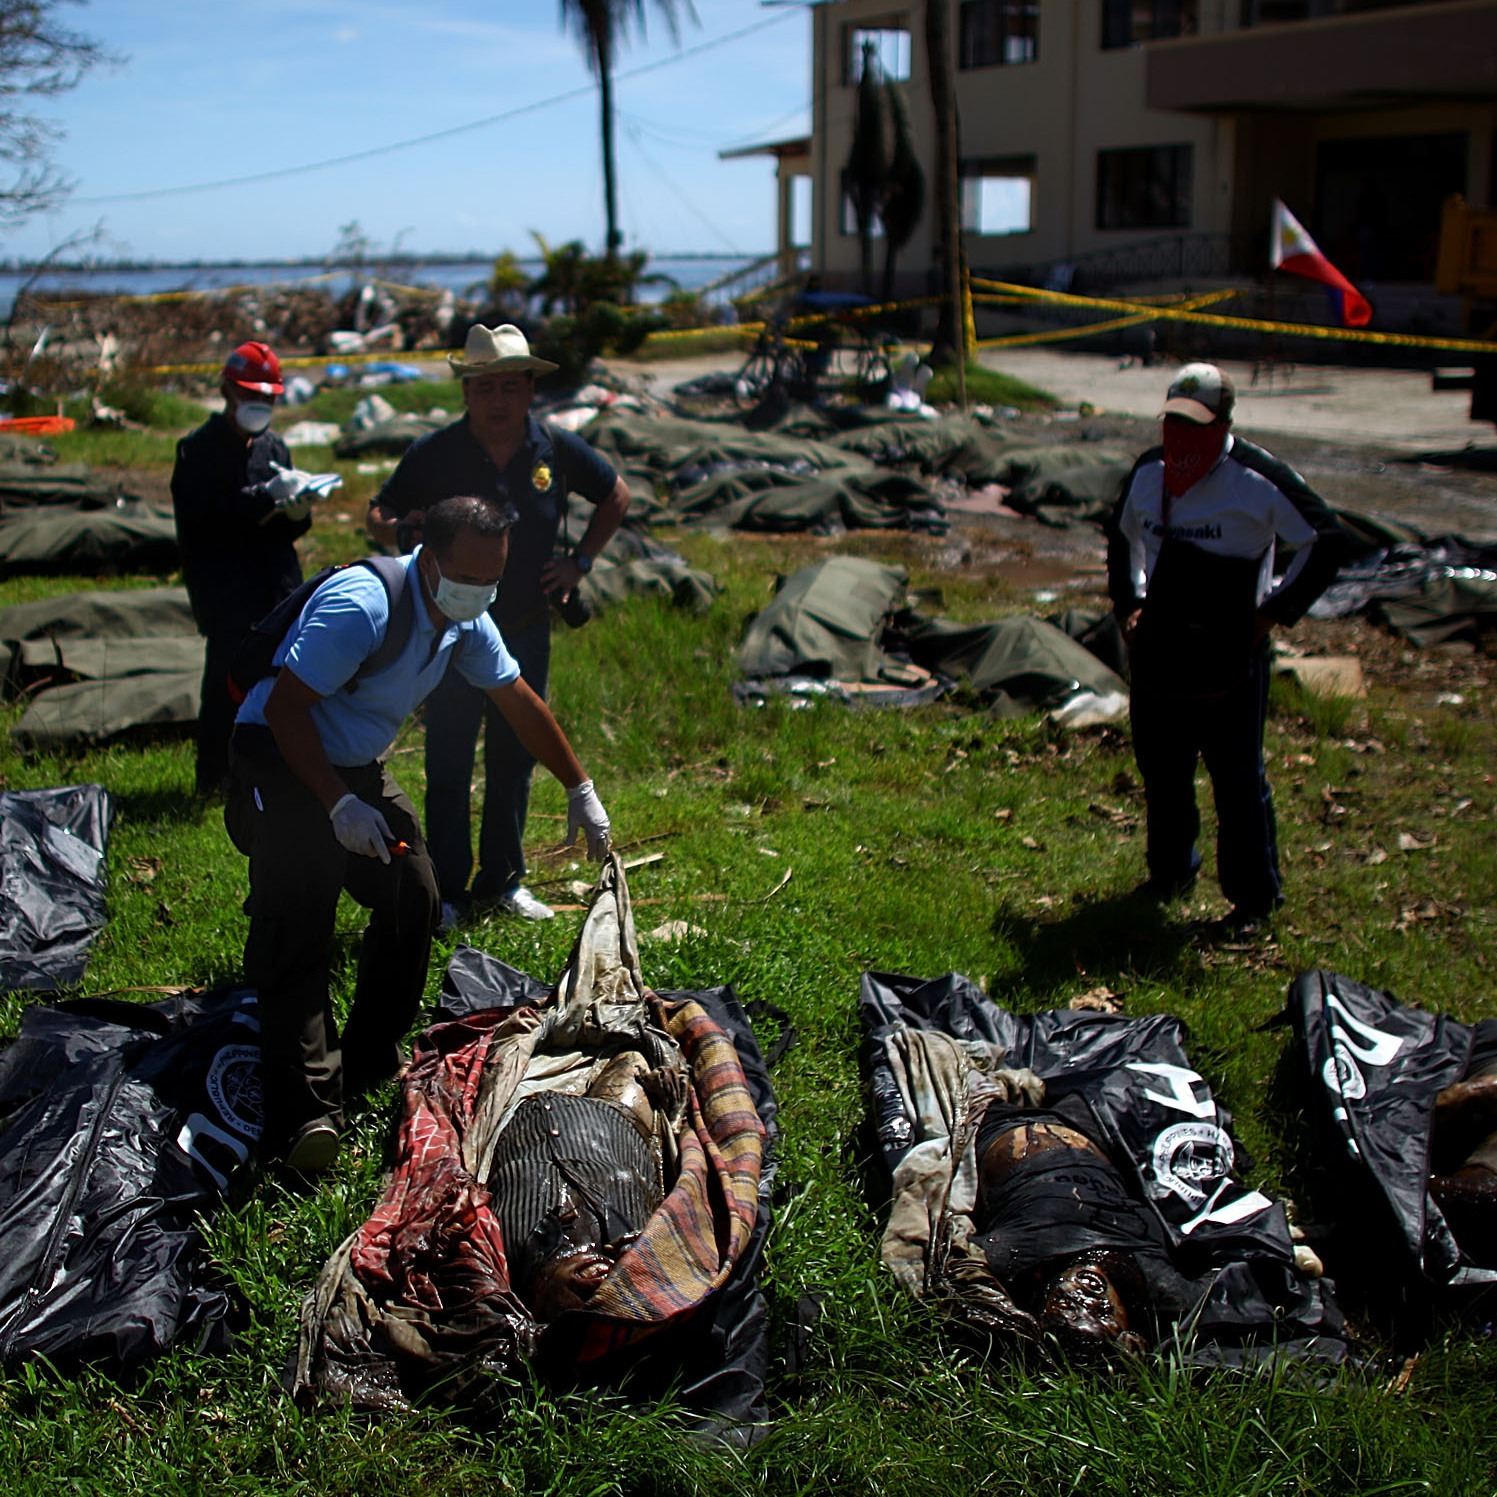 Filipino coroners examine the rotting remains of bodies left at a makeshift morgue outside Tacloban's City Hall.